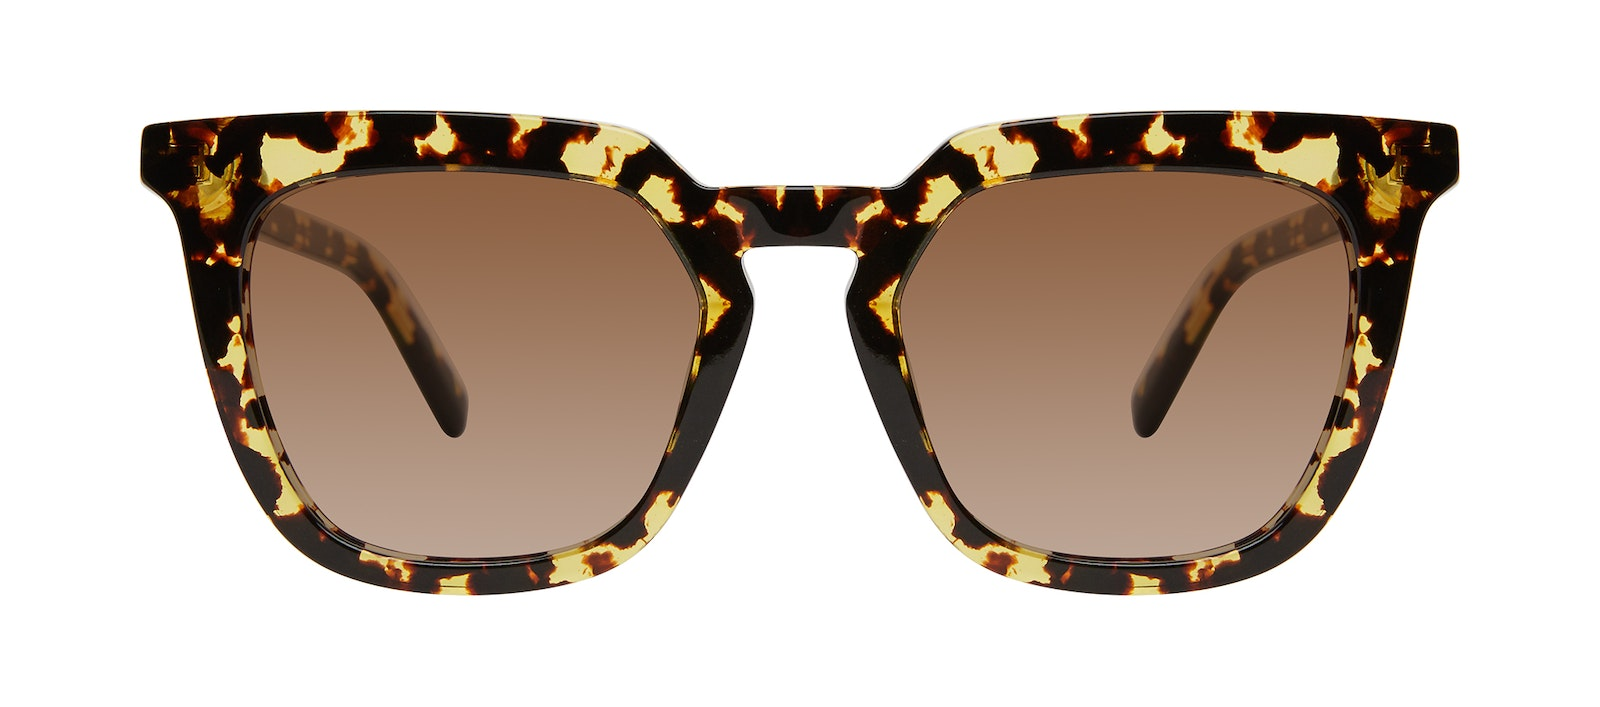 Affordable Fashion Glasses Square Sunglasses Women Hollywood Gold Flake Front